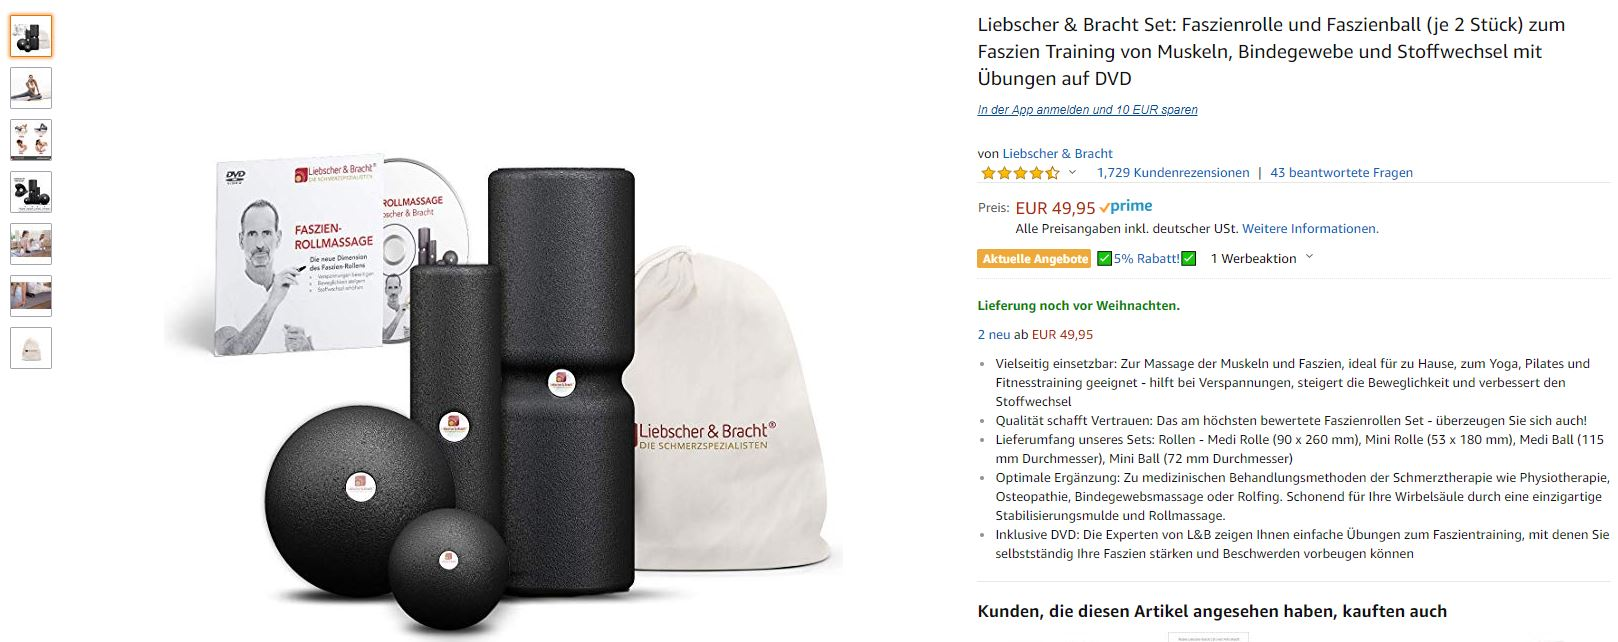 Amazon FBA USP finden 3